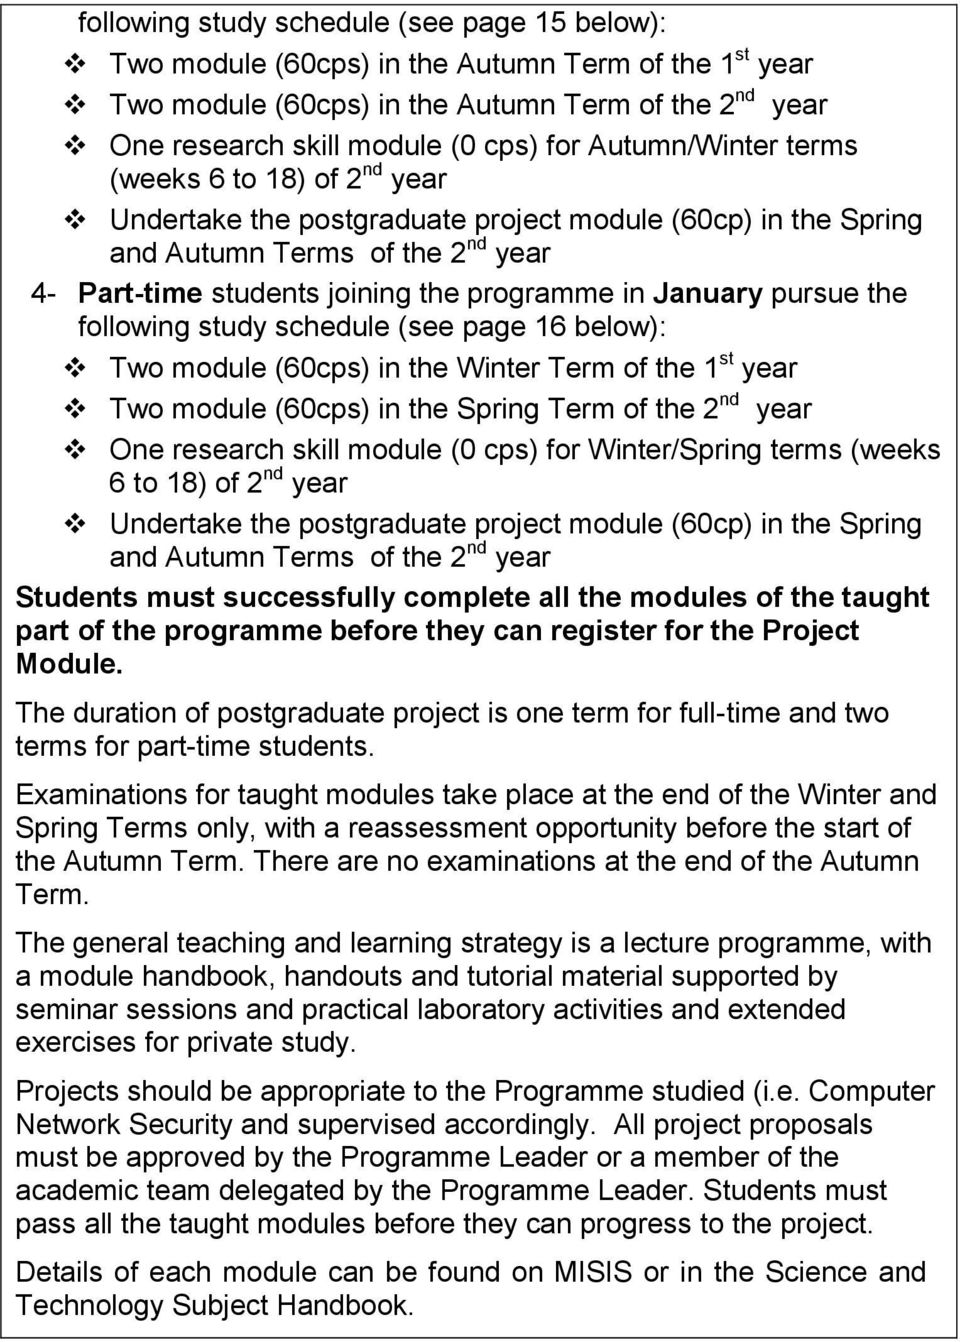 January pursue the following study schedule (see page 16 below): Two module (60cps) in the Winter Term of the 1 st year Two module (60cps) in the Spring Term of the 2 nd year One research skill